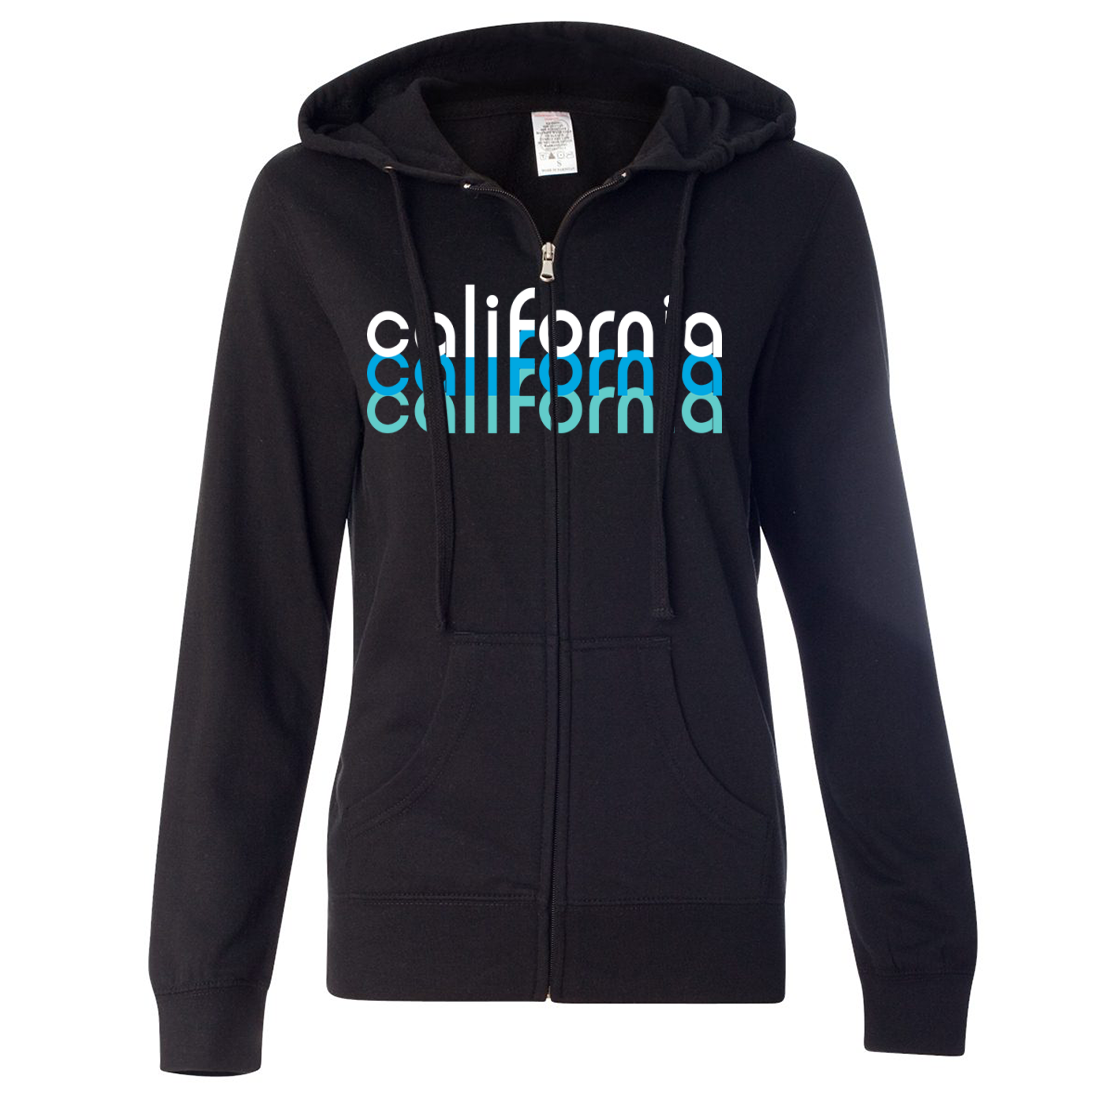 California Cool Stacked Ladies Lightweight Fitted Zip-Up Hoodie